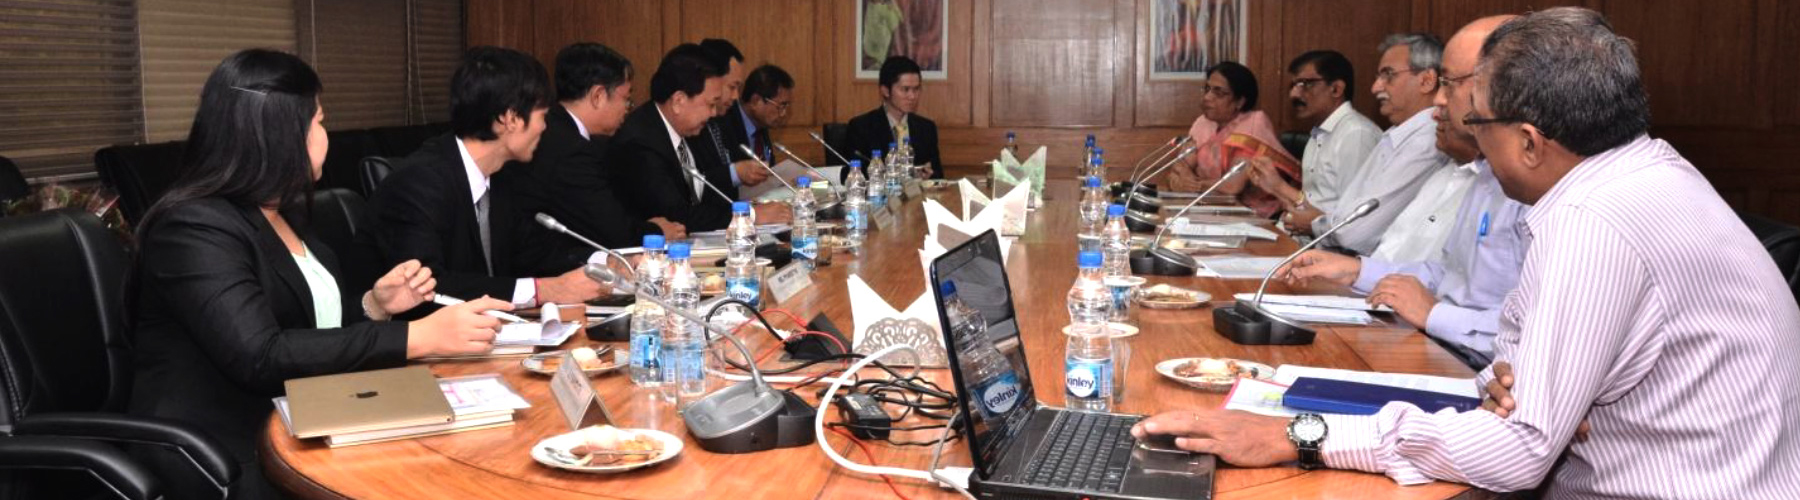 Meeting With Officials